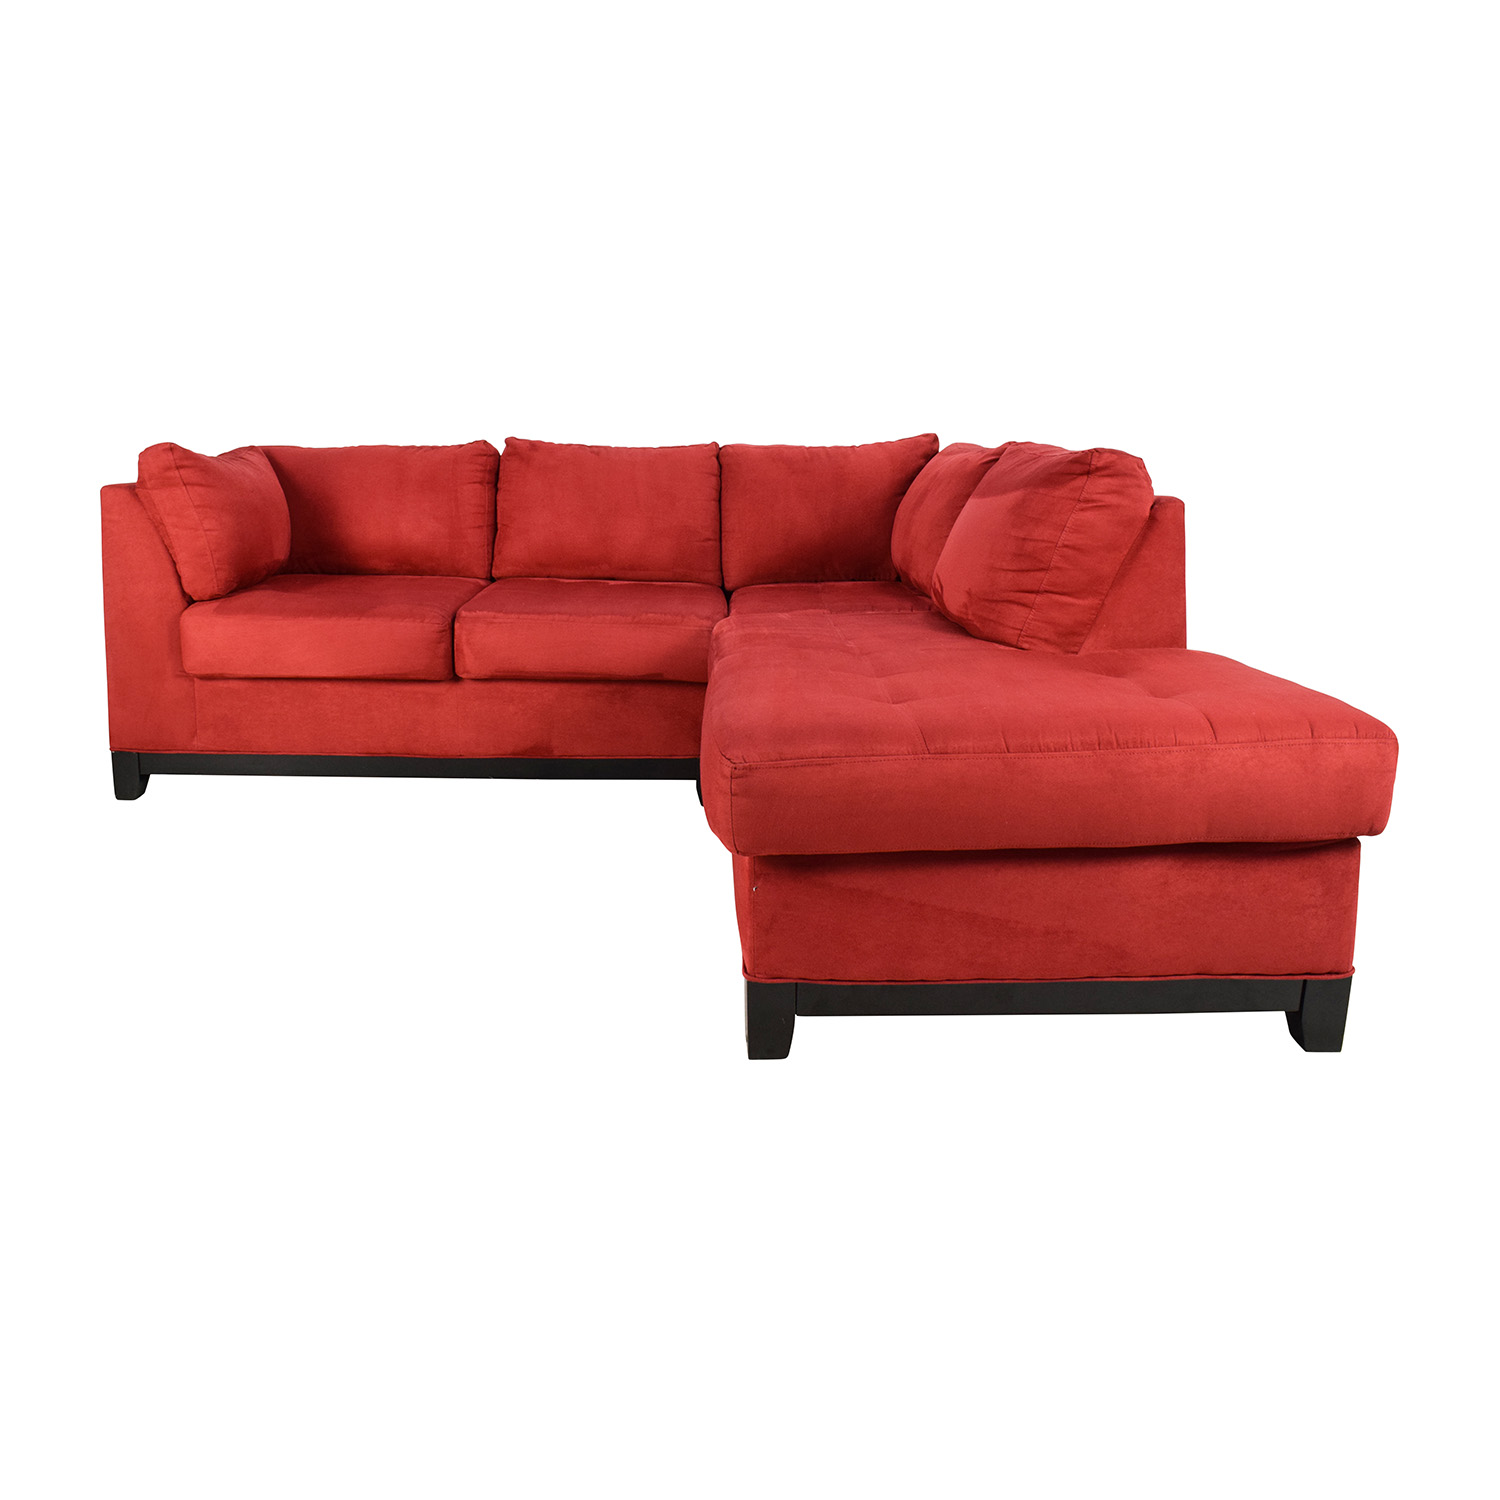 buy Raymour & Flanigan Zella Red Sectional  Raymour and Flanigan Sectionals